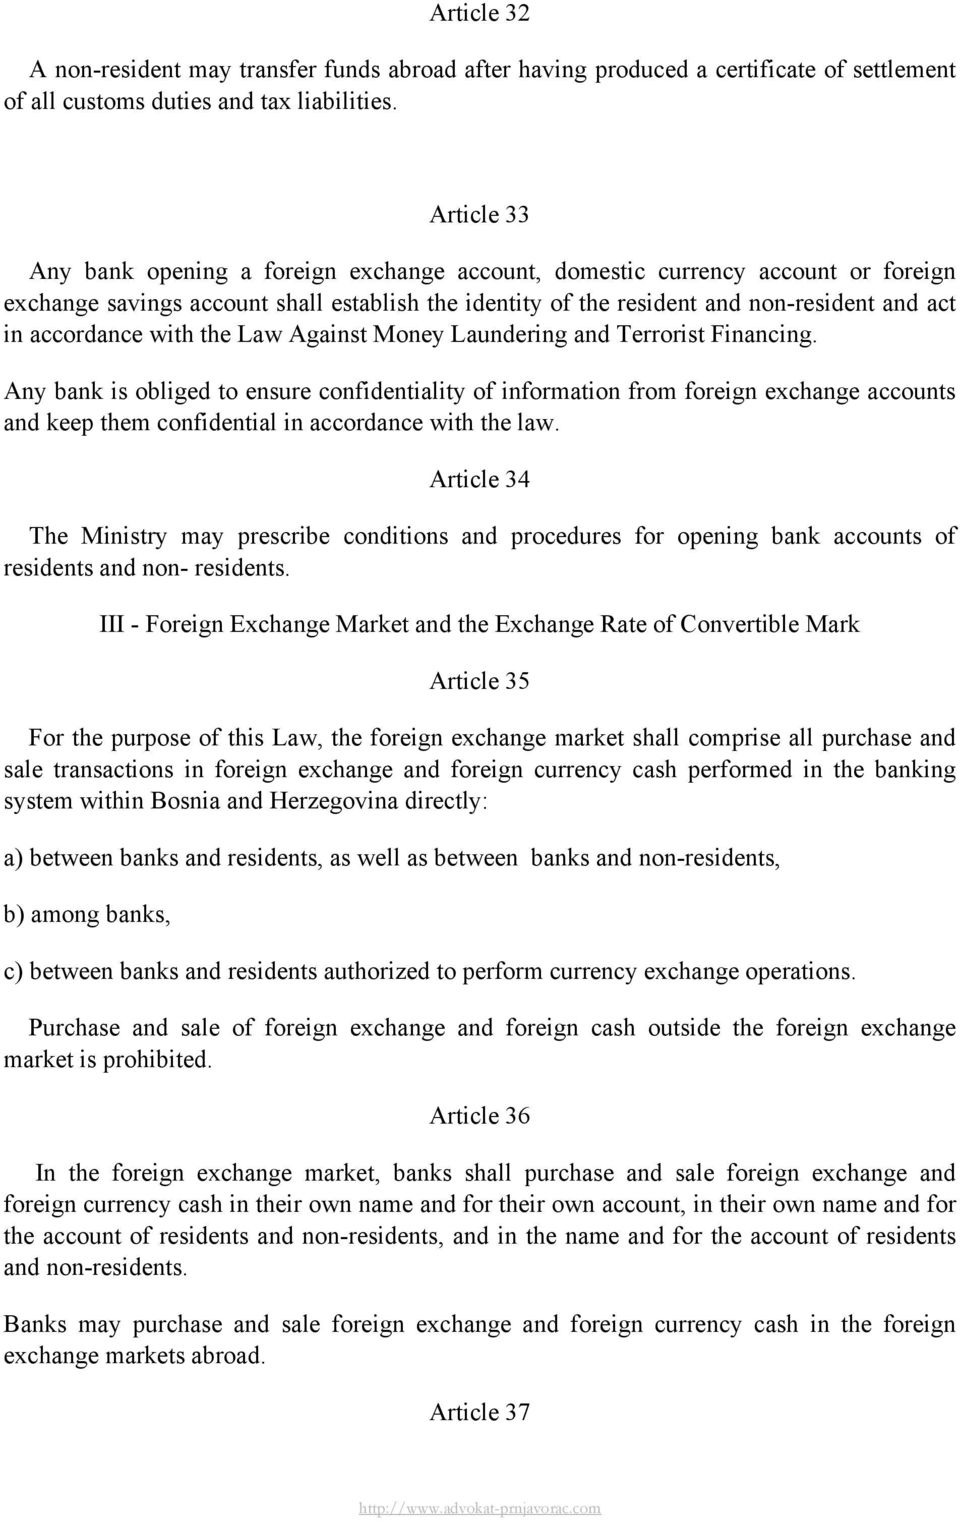 accordance with the Law Against Money Laundering and Terrorist Financing.